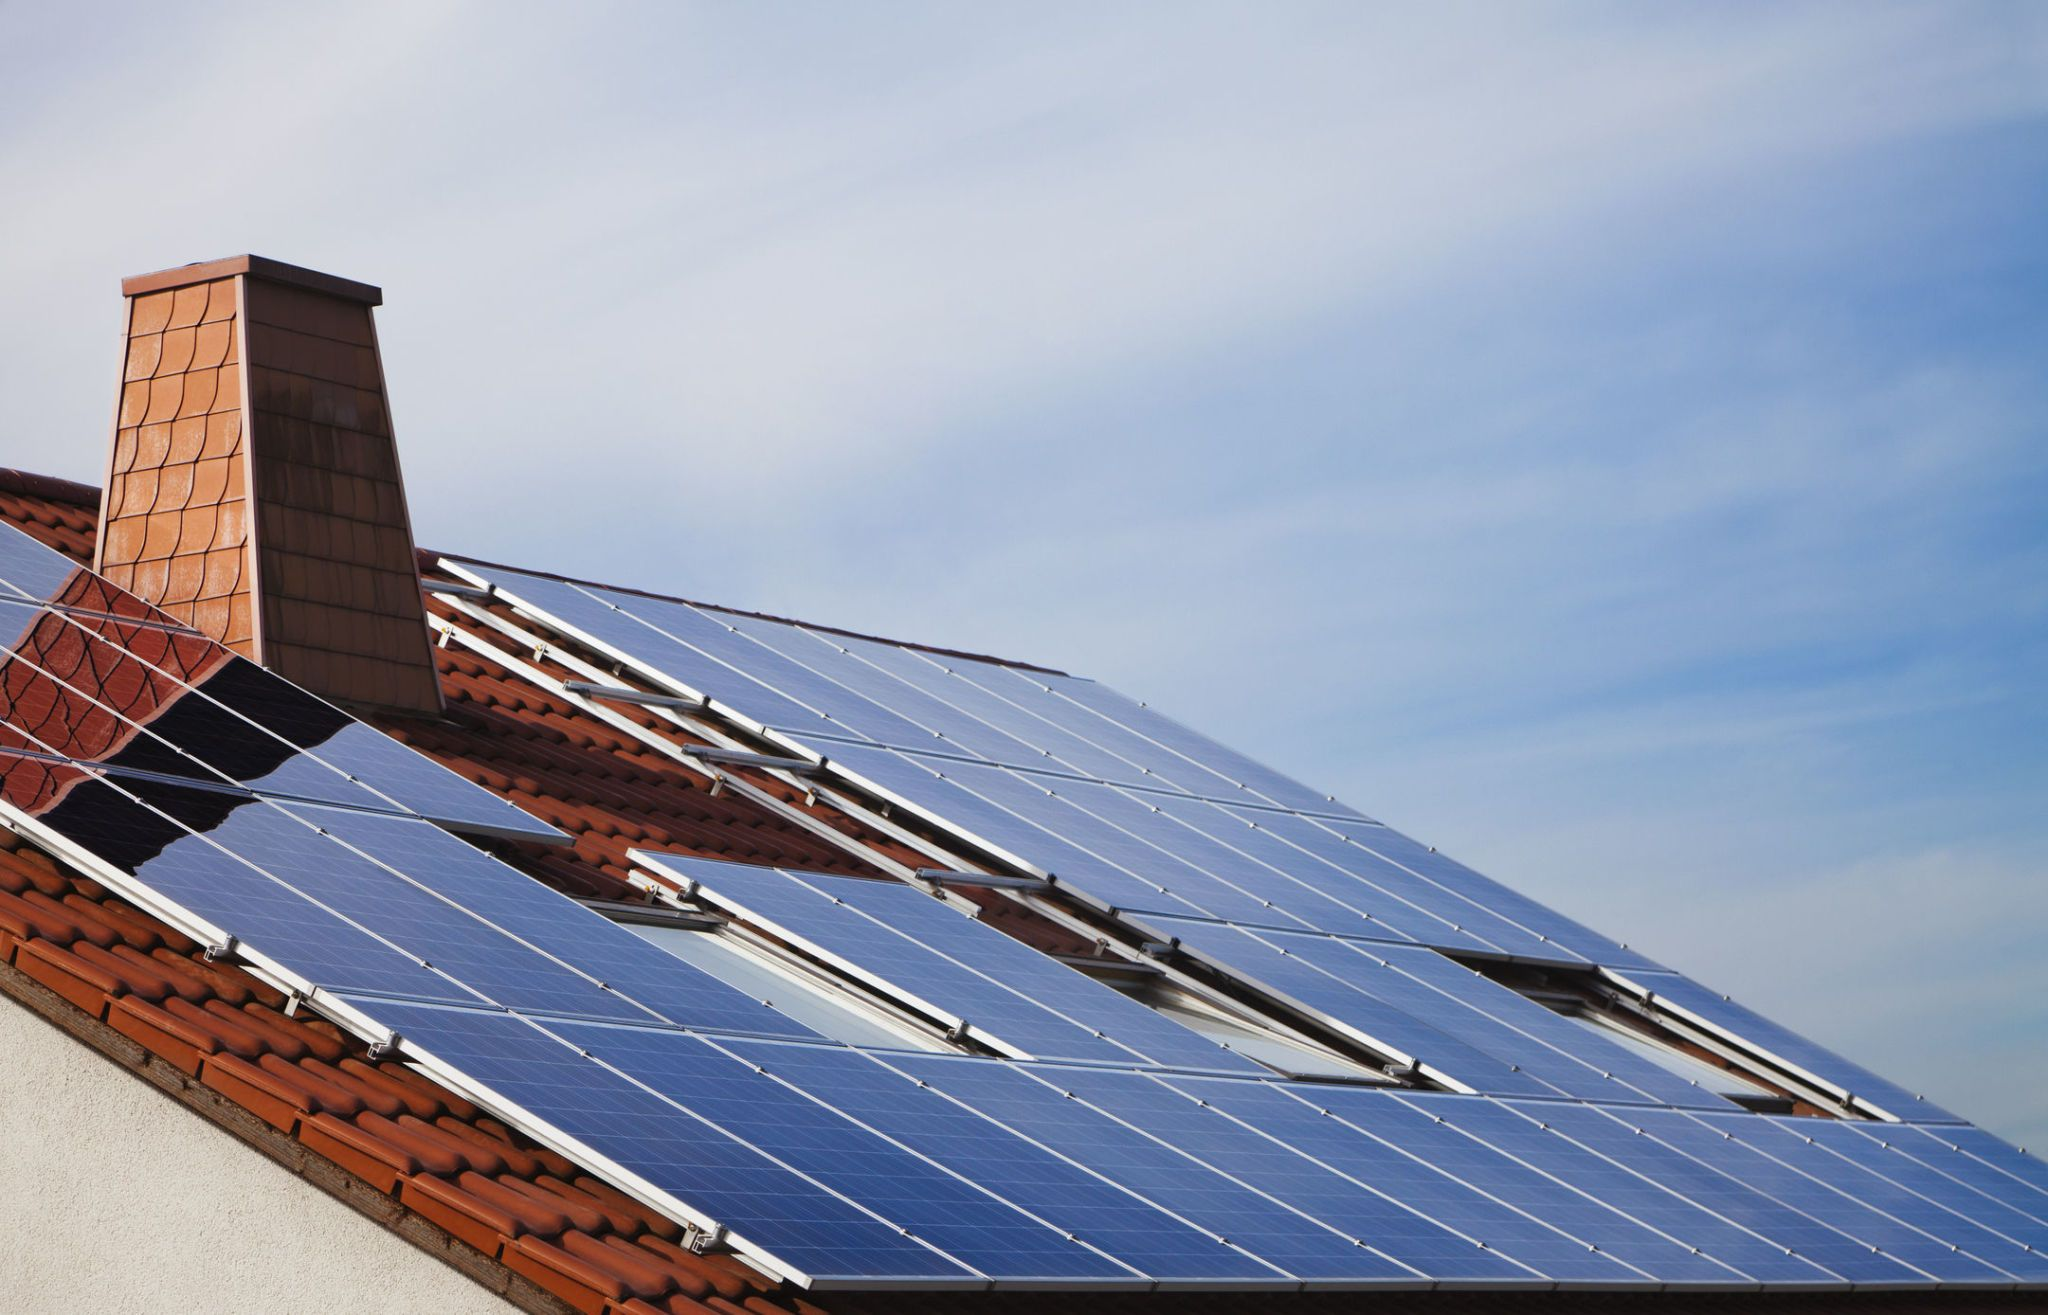 Find Out How Much Power You'd Get From Solar Panels on Your Roof